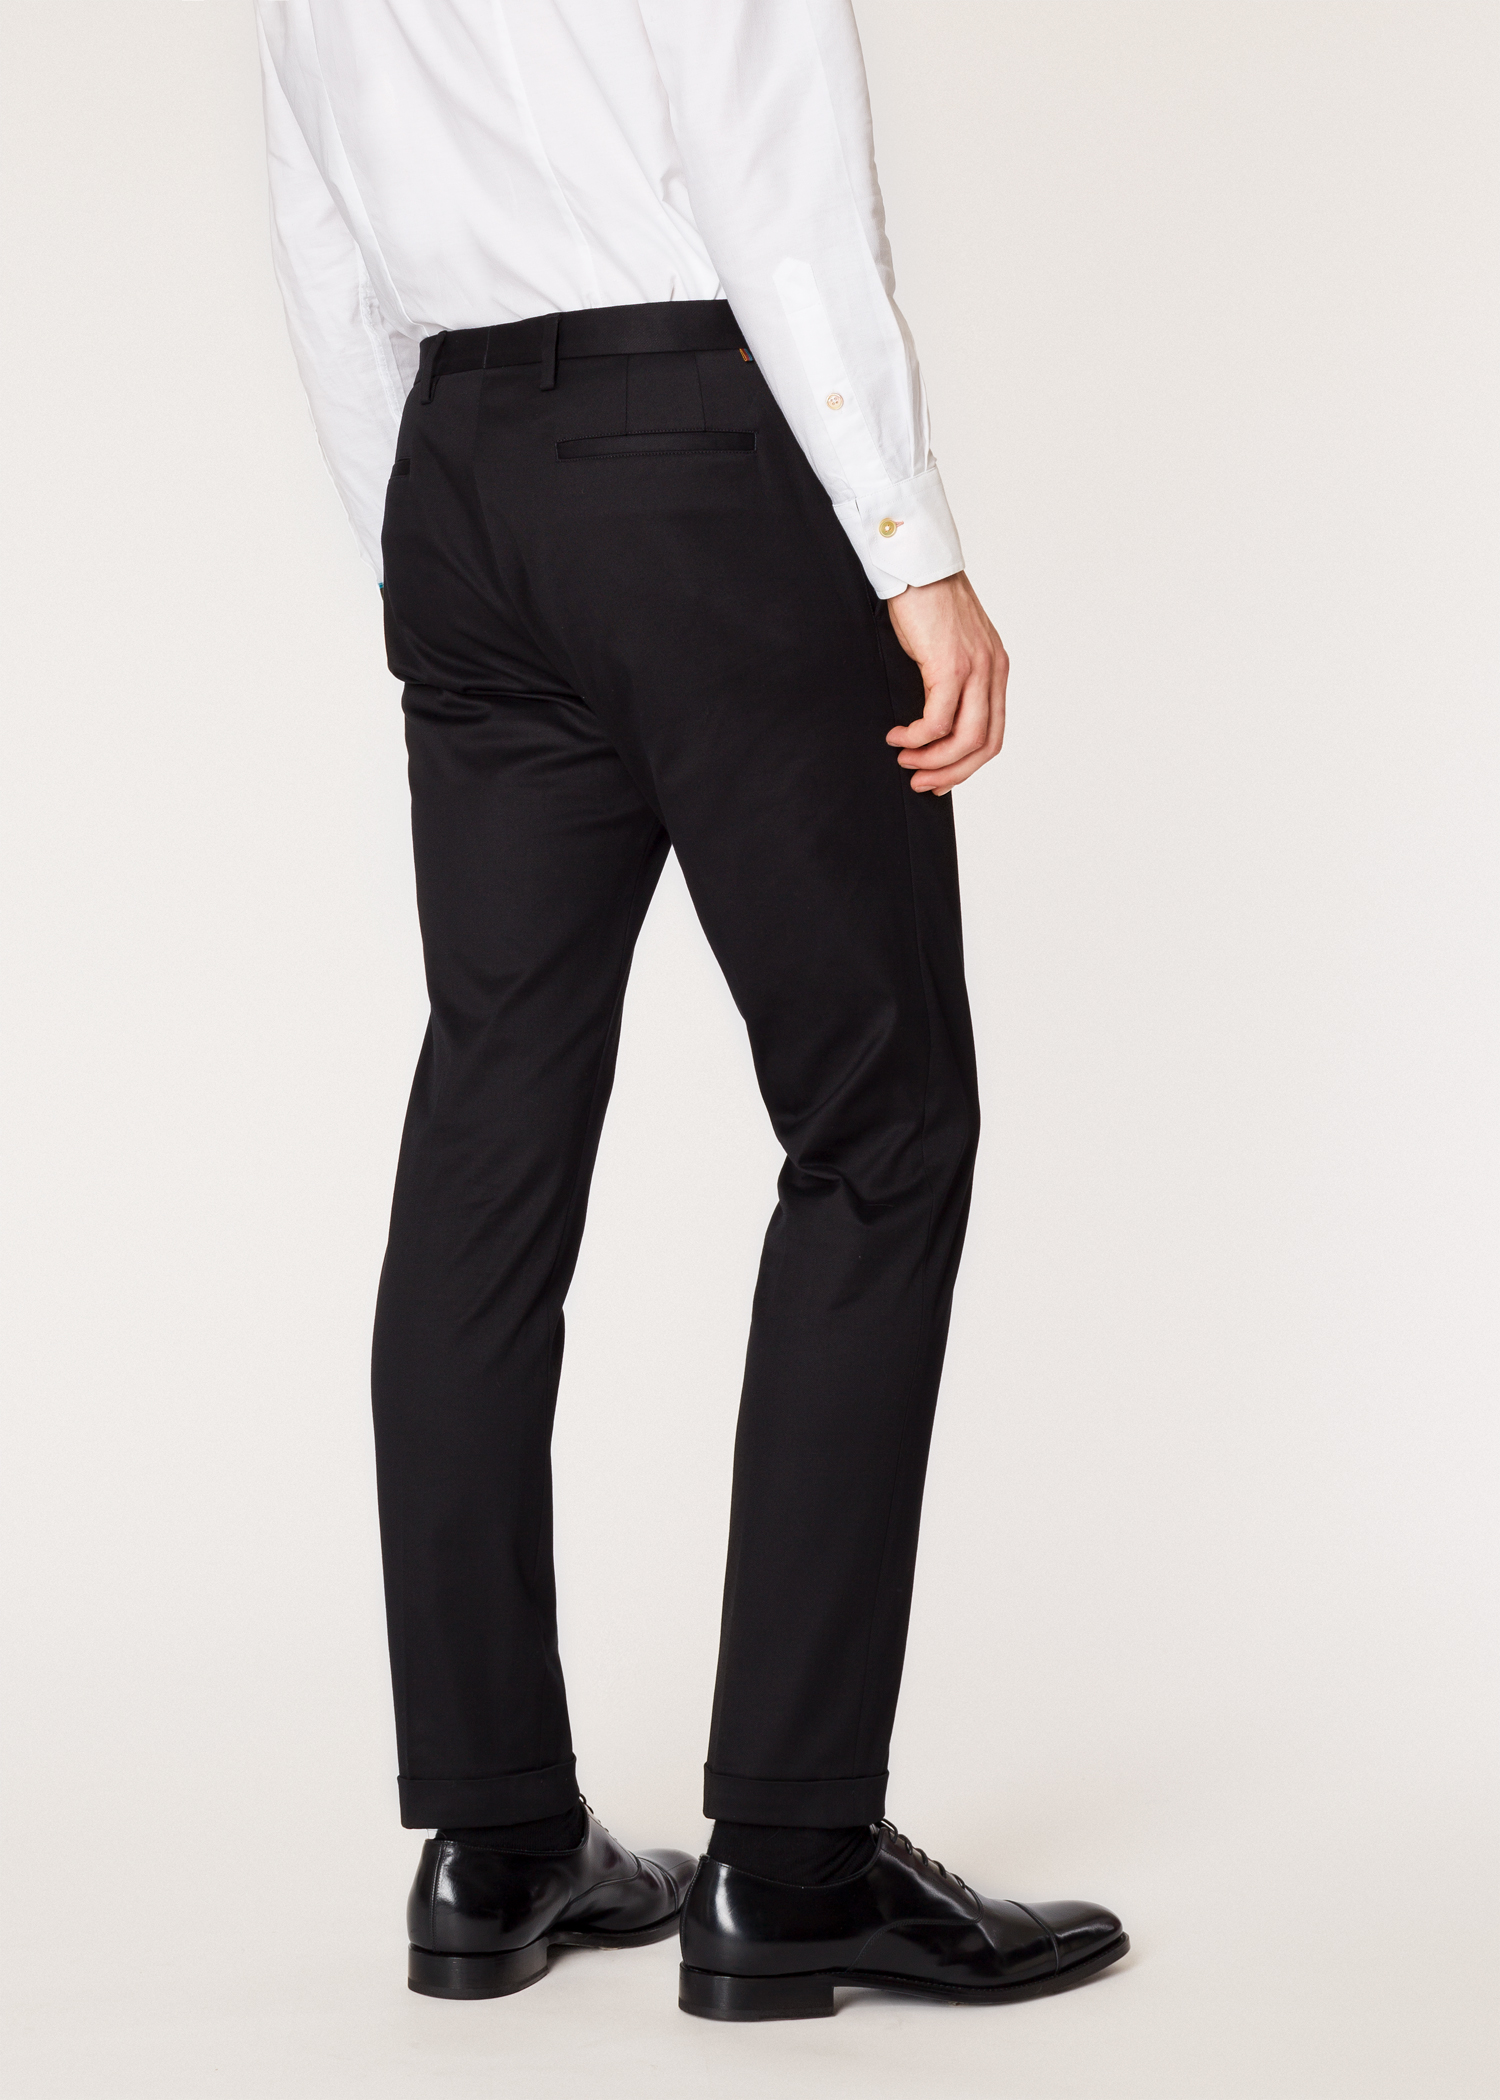 Vue mannequin dos zoom - Pantalon Homme Noir En Coton Stretch Coupe Slim  Paul Smith 6ef152fd0c9